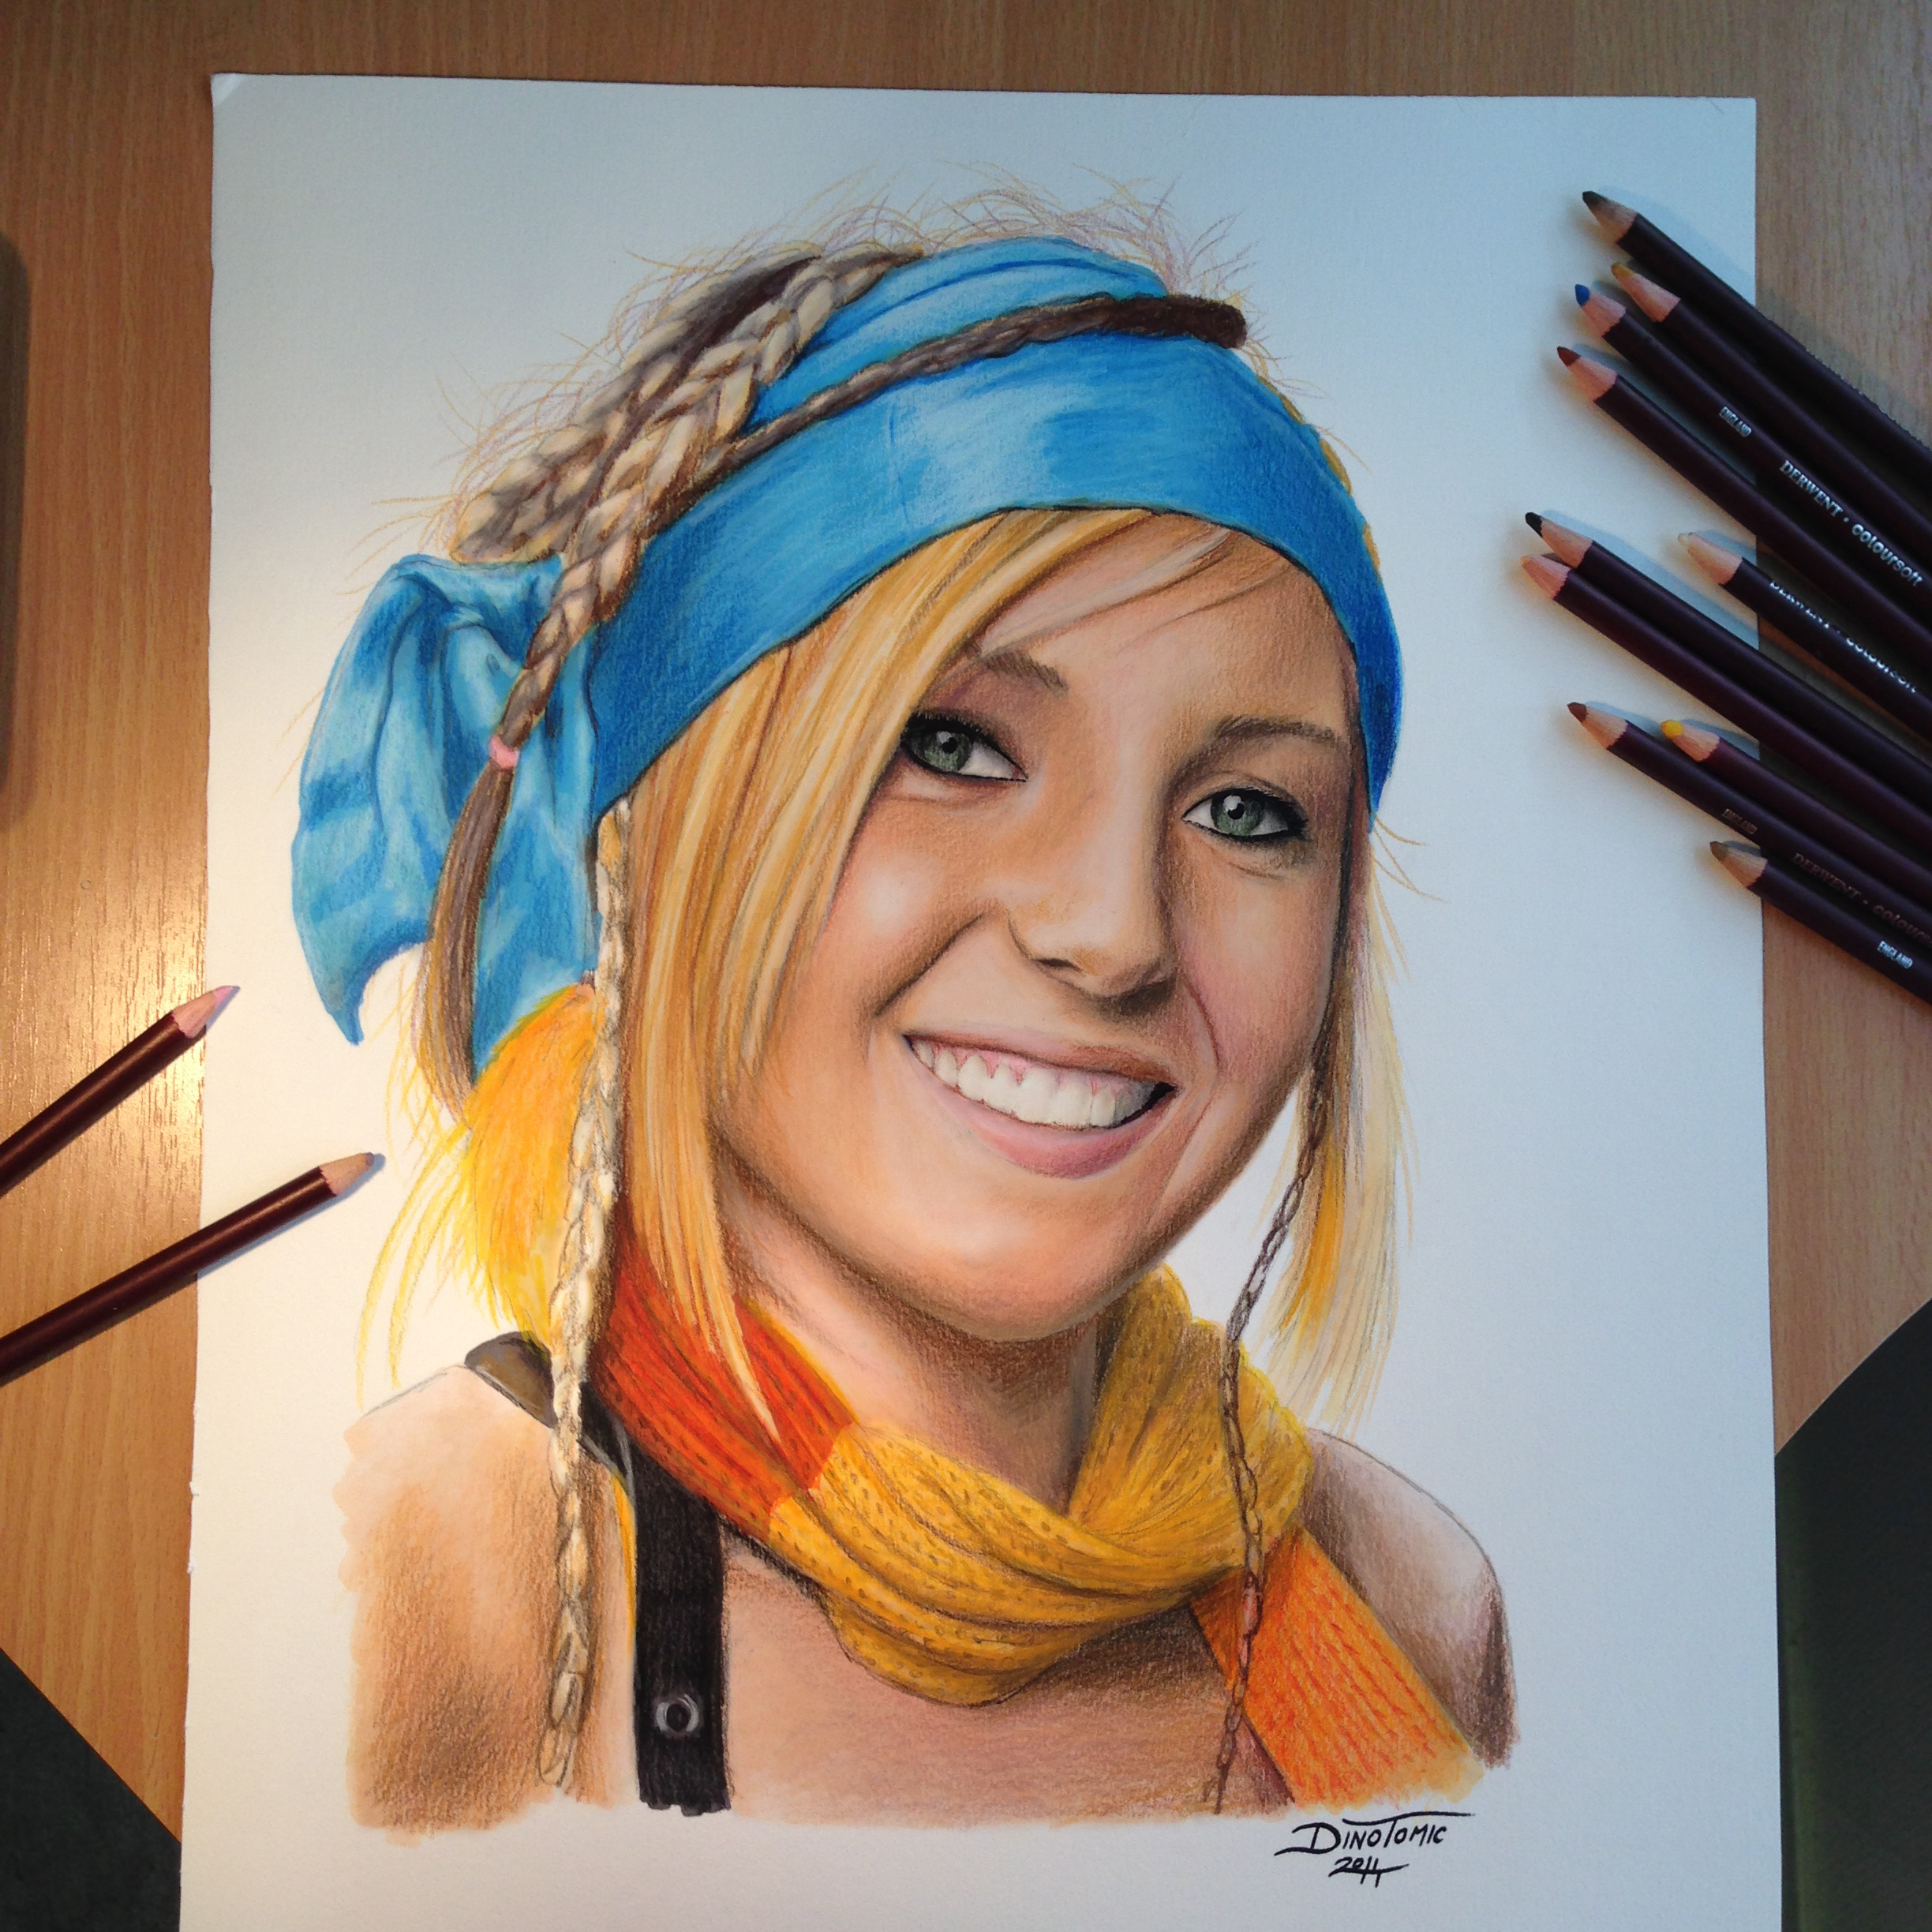 Drawn portrait color And Wax and Pencil Tools